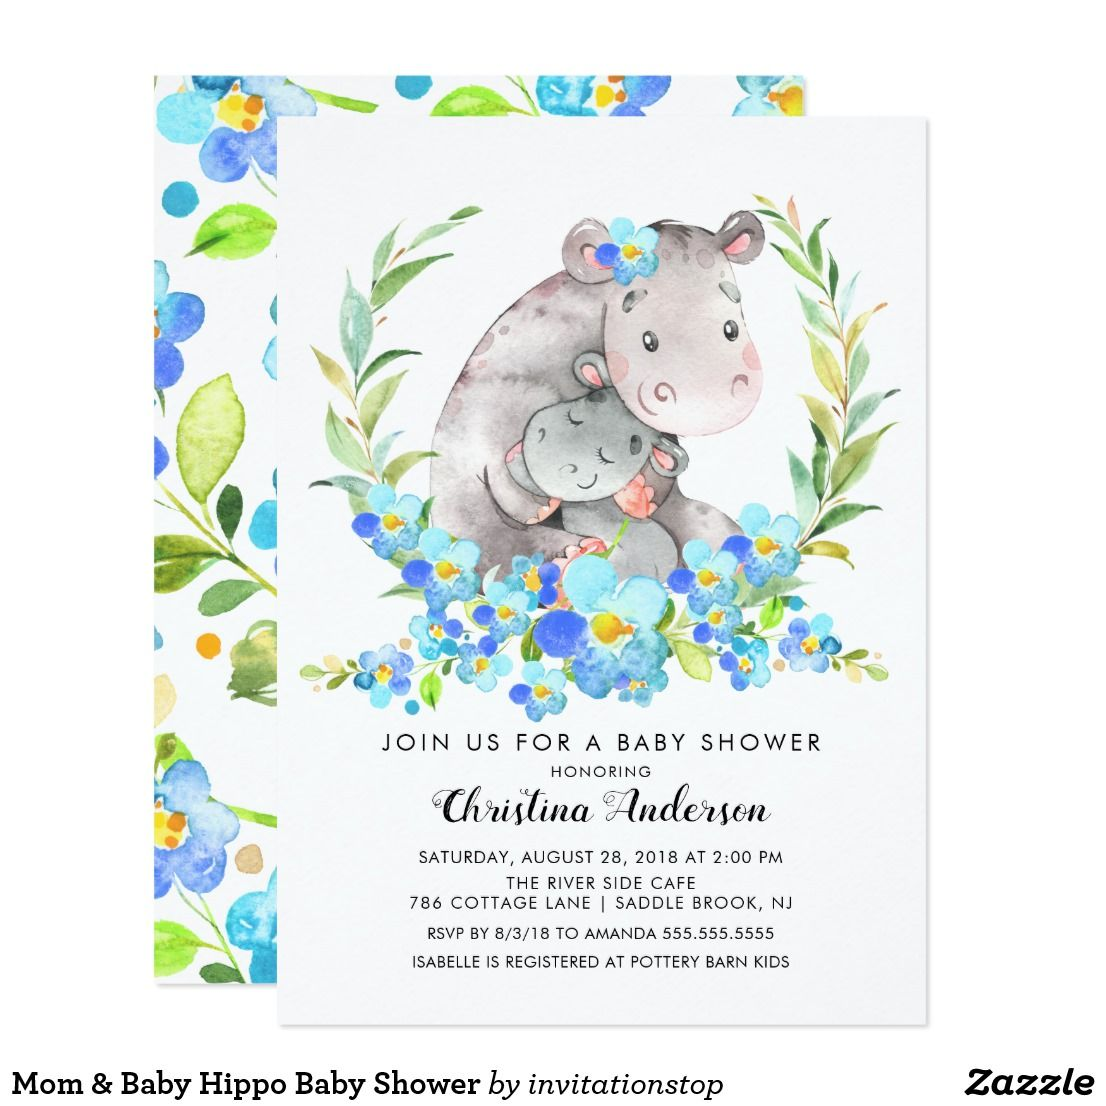 Mom & Baby Hippo Baby Shower Invitation | Zazzle.com #babyhippo